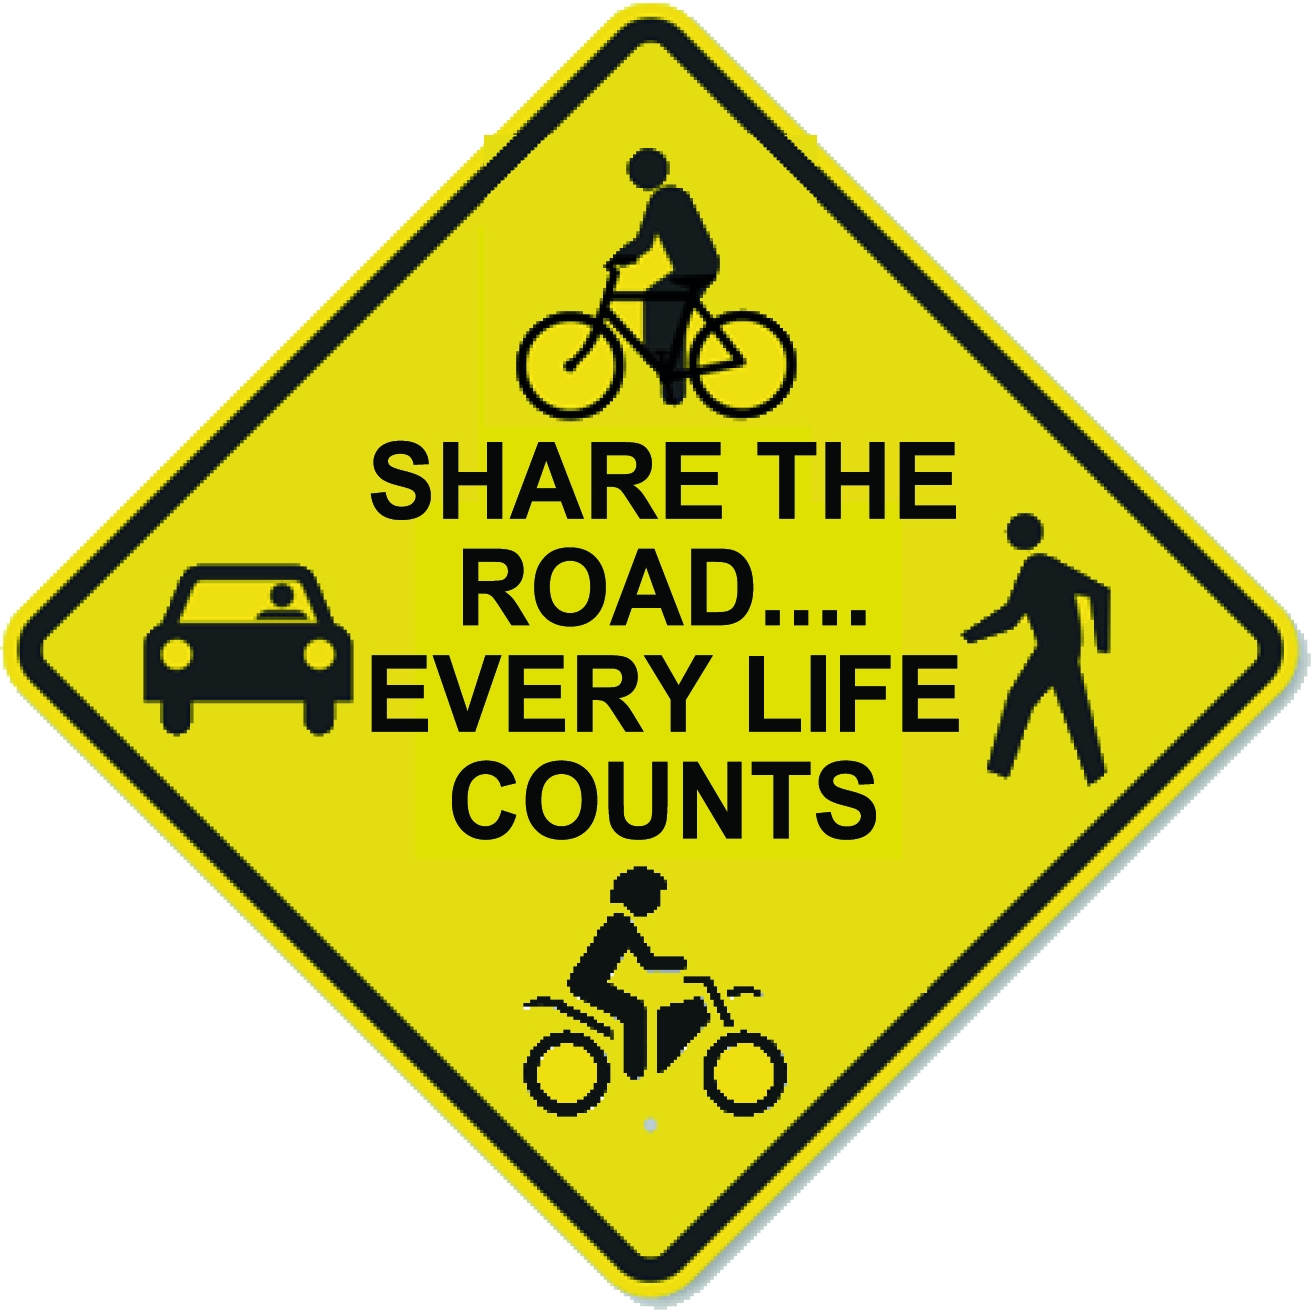 share-the-road-every-life-counts-decal